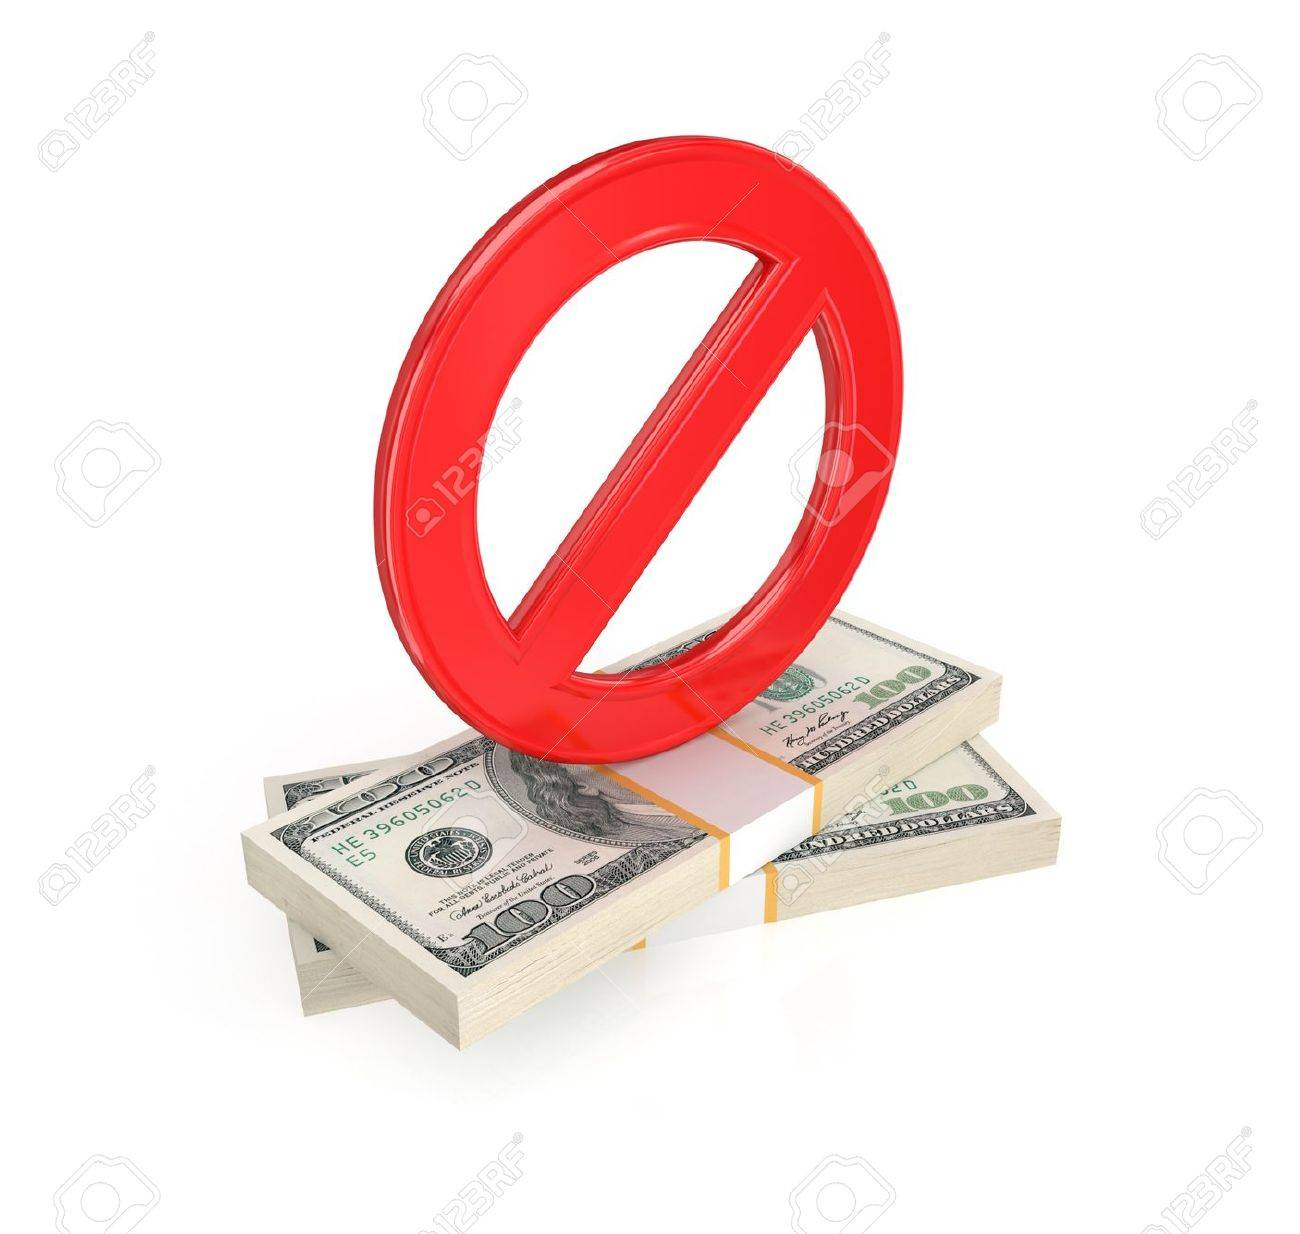 Red stop symbol and dollar packs.Isolated on white background.3d rendered. Stock Photo - 12175462